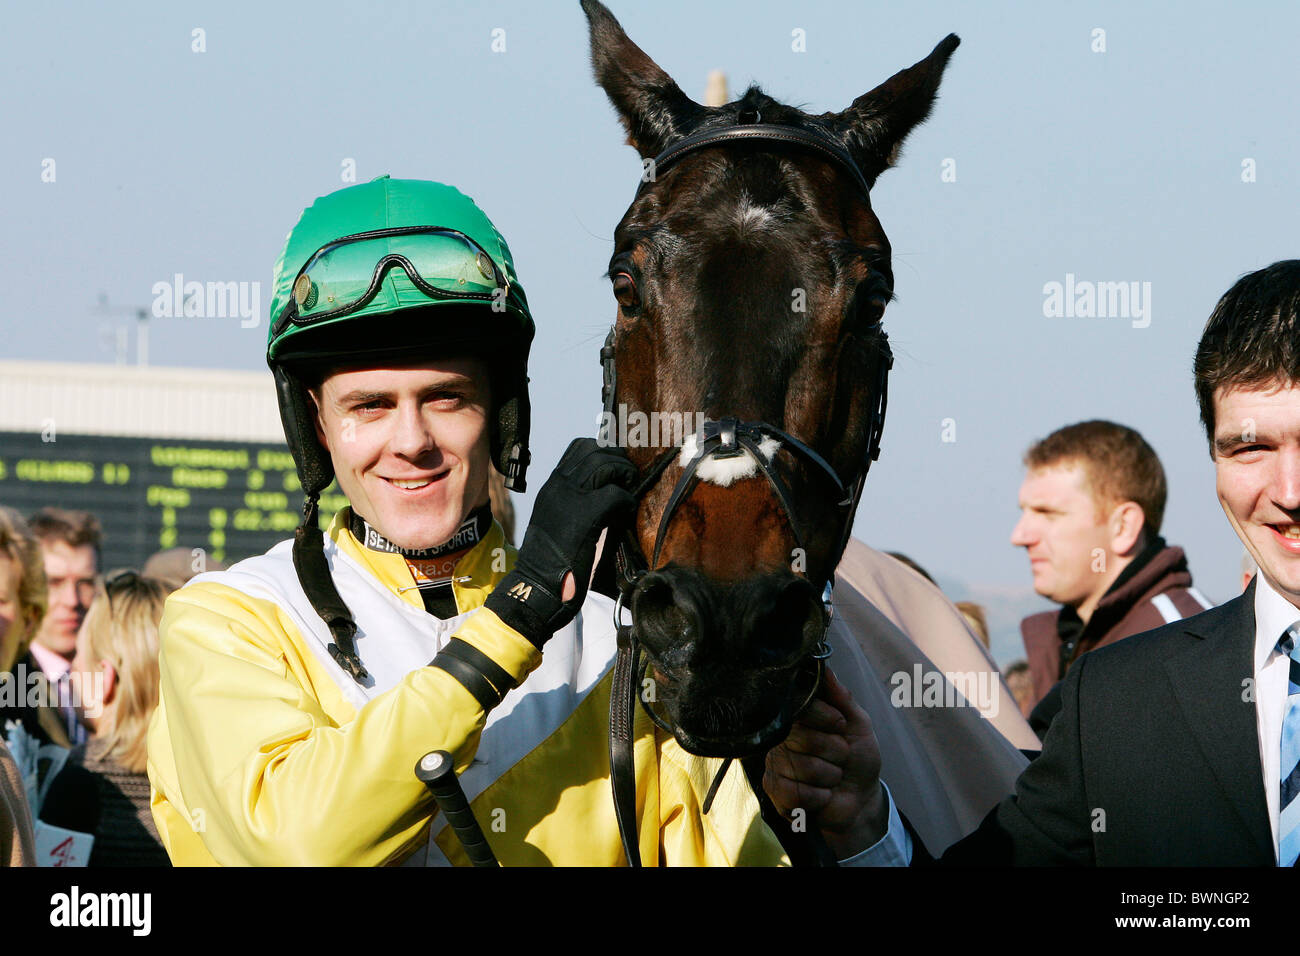 The winners of the Championship Chase, jockey Andrew McNamara and horse Newmill, at Cheltenham Races National Hunt - Stock Image